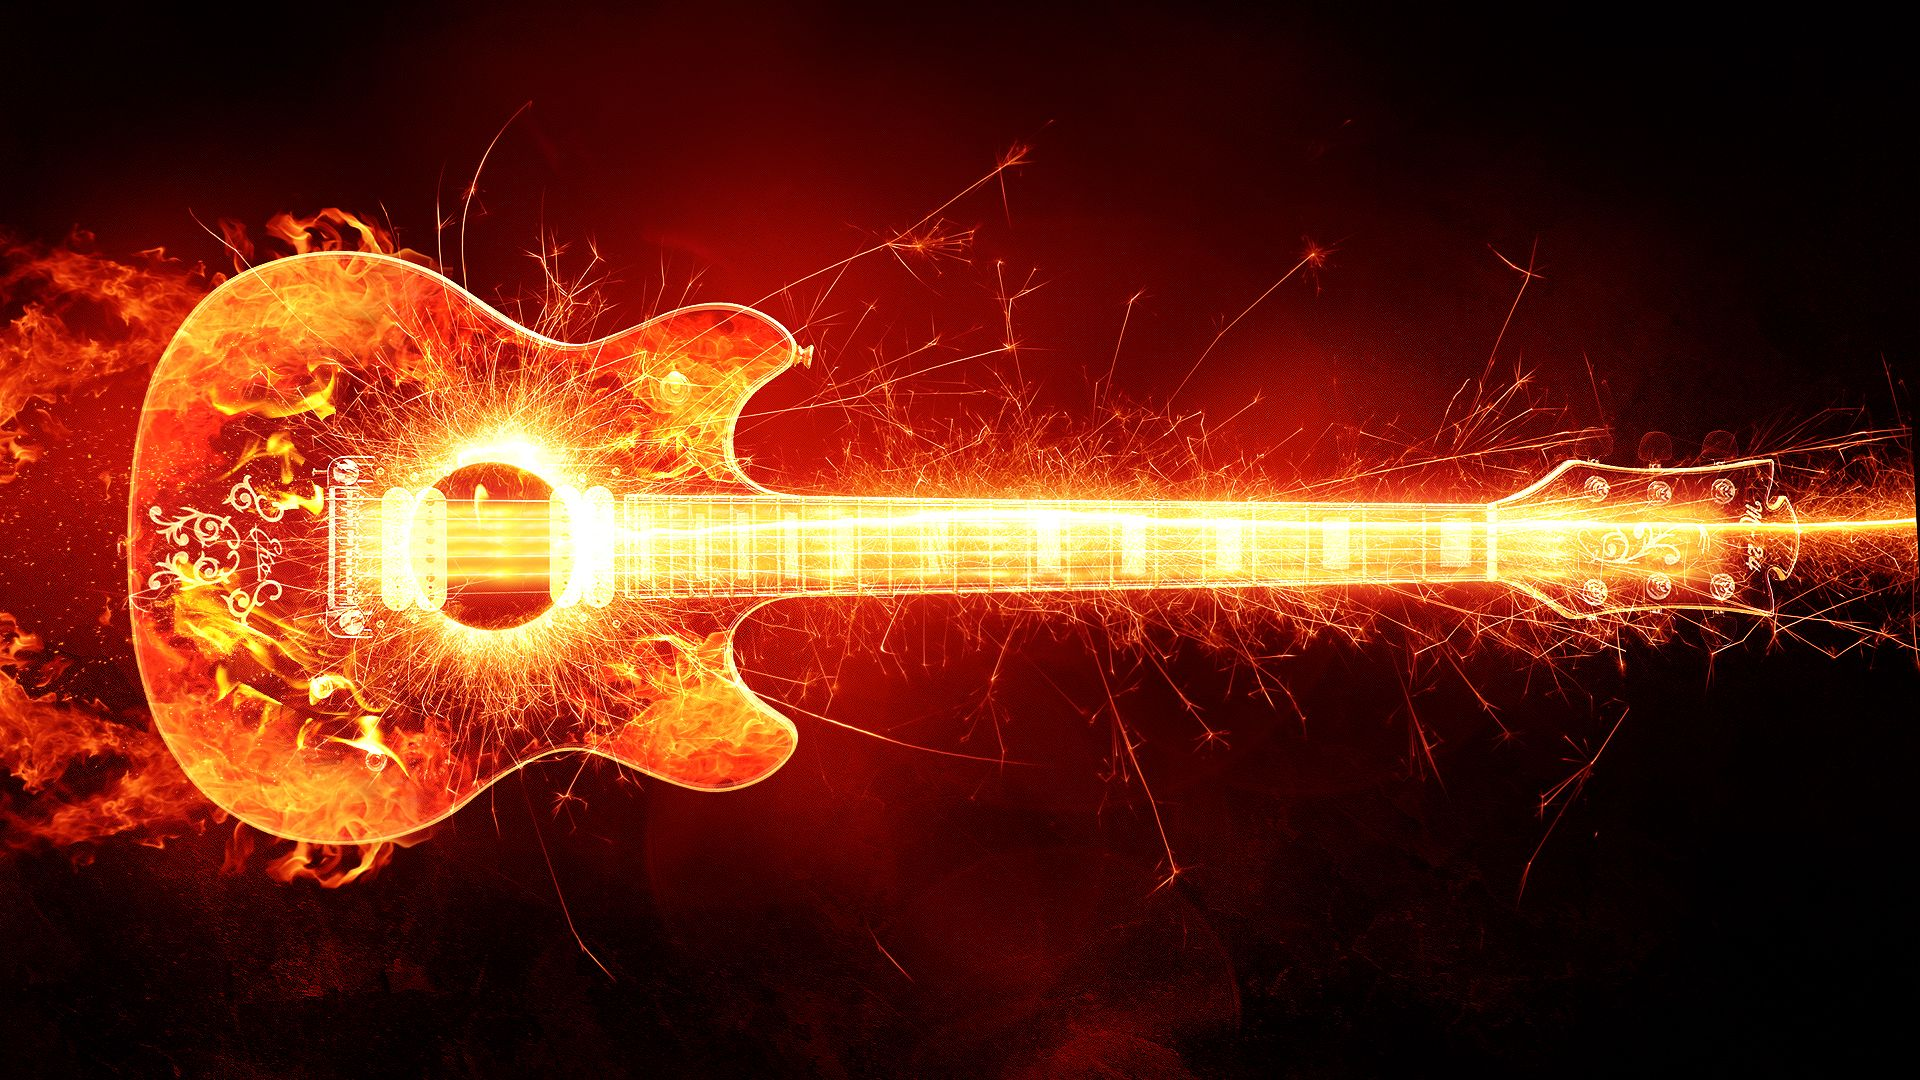 Wallpapers Collection Guitar Wallpapers Hd Wallpapers Guitar Pics Guitar Art Guitar Images